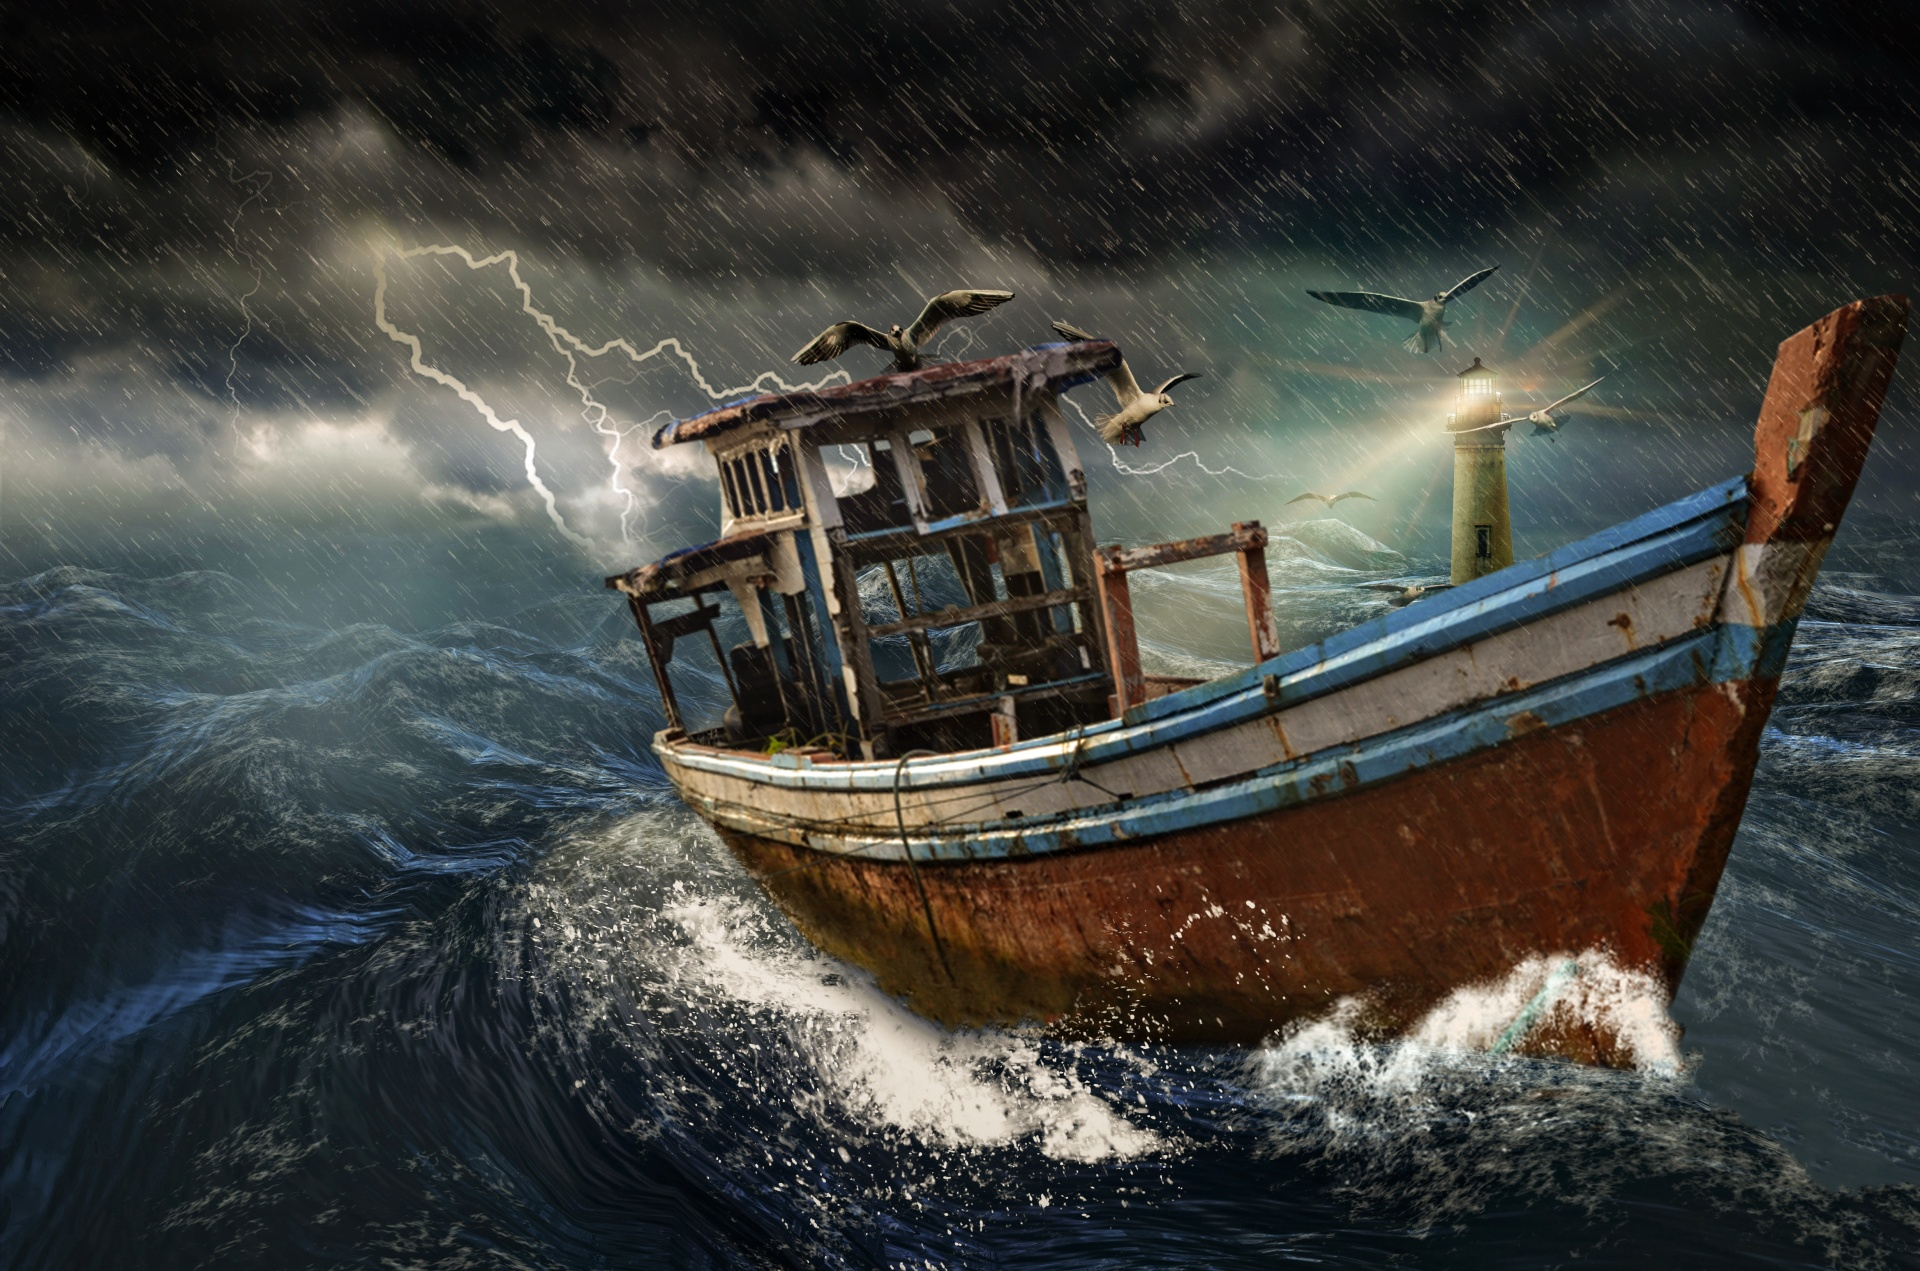 Old Boat In Storm Free Stock Photo - Public Domain Pictures